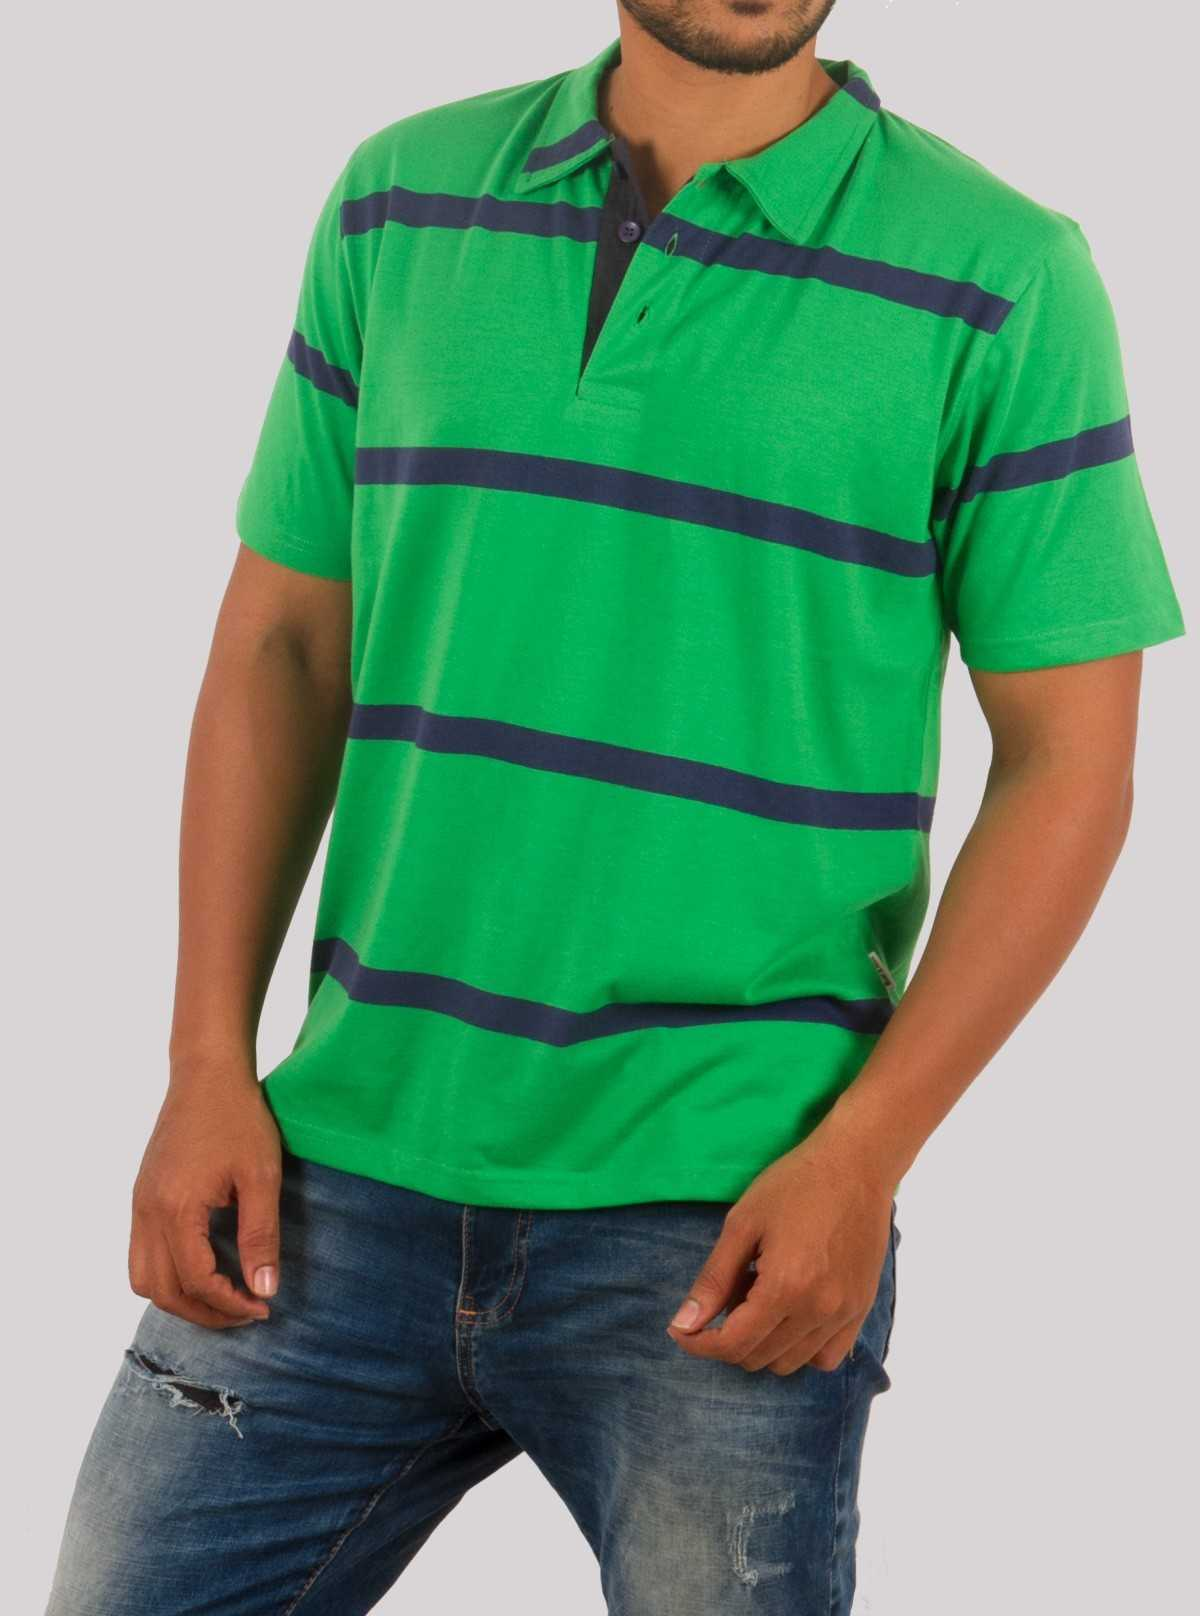 Green Stripe Polo TShirt